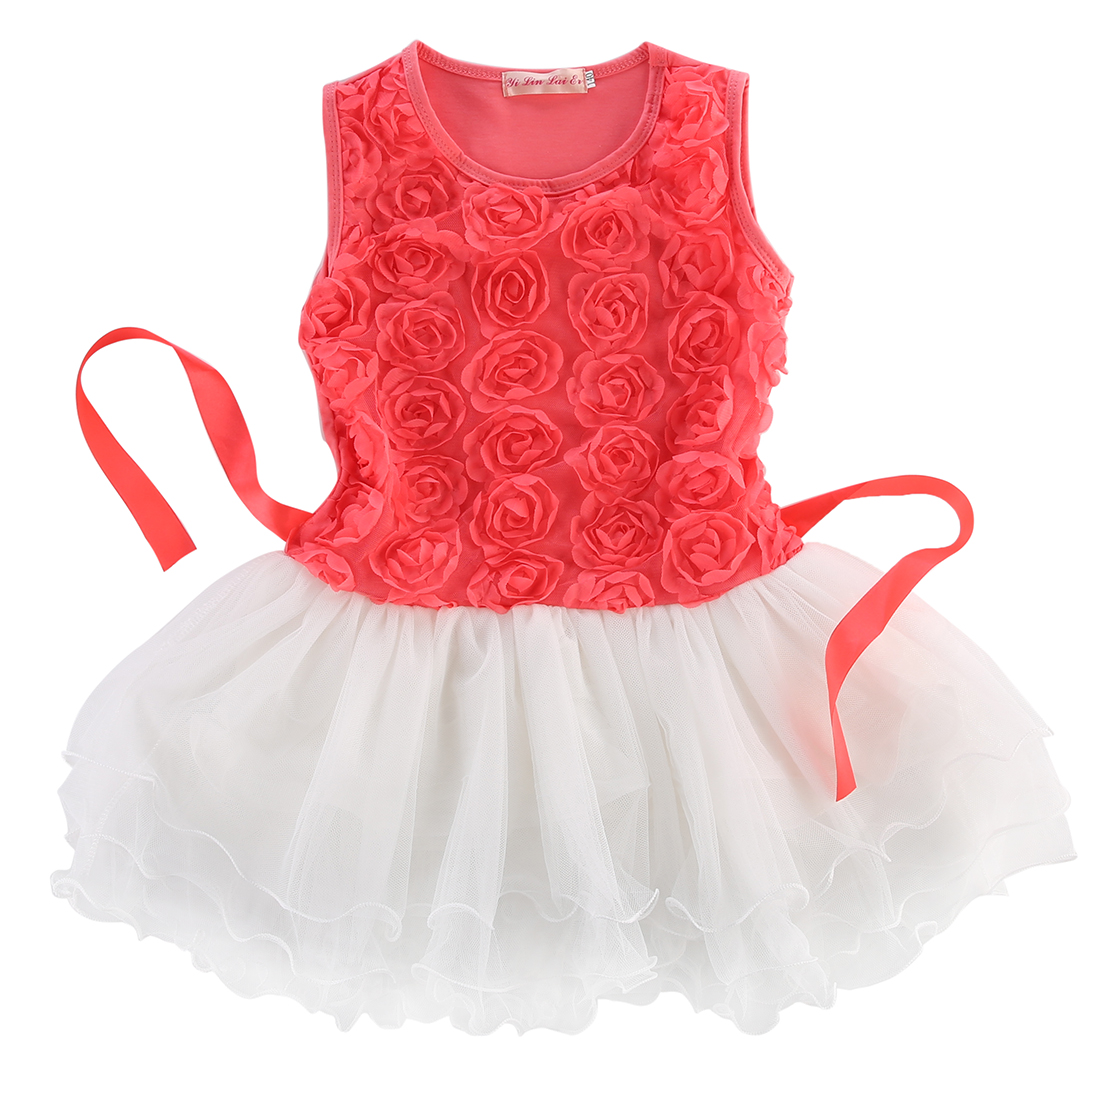 Girl Cute Fashion Dresses New Rose Flower Princess Pageant Birthday Dress Children Baby Kids Girls Ball Gown Toddlers Clothes flower girls dress 11 color with rose party birthday chirstening dress for baby girl princess children toddler girl vest dresses